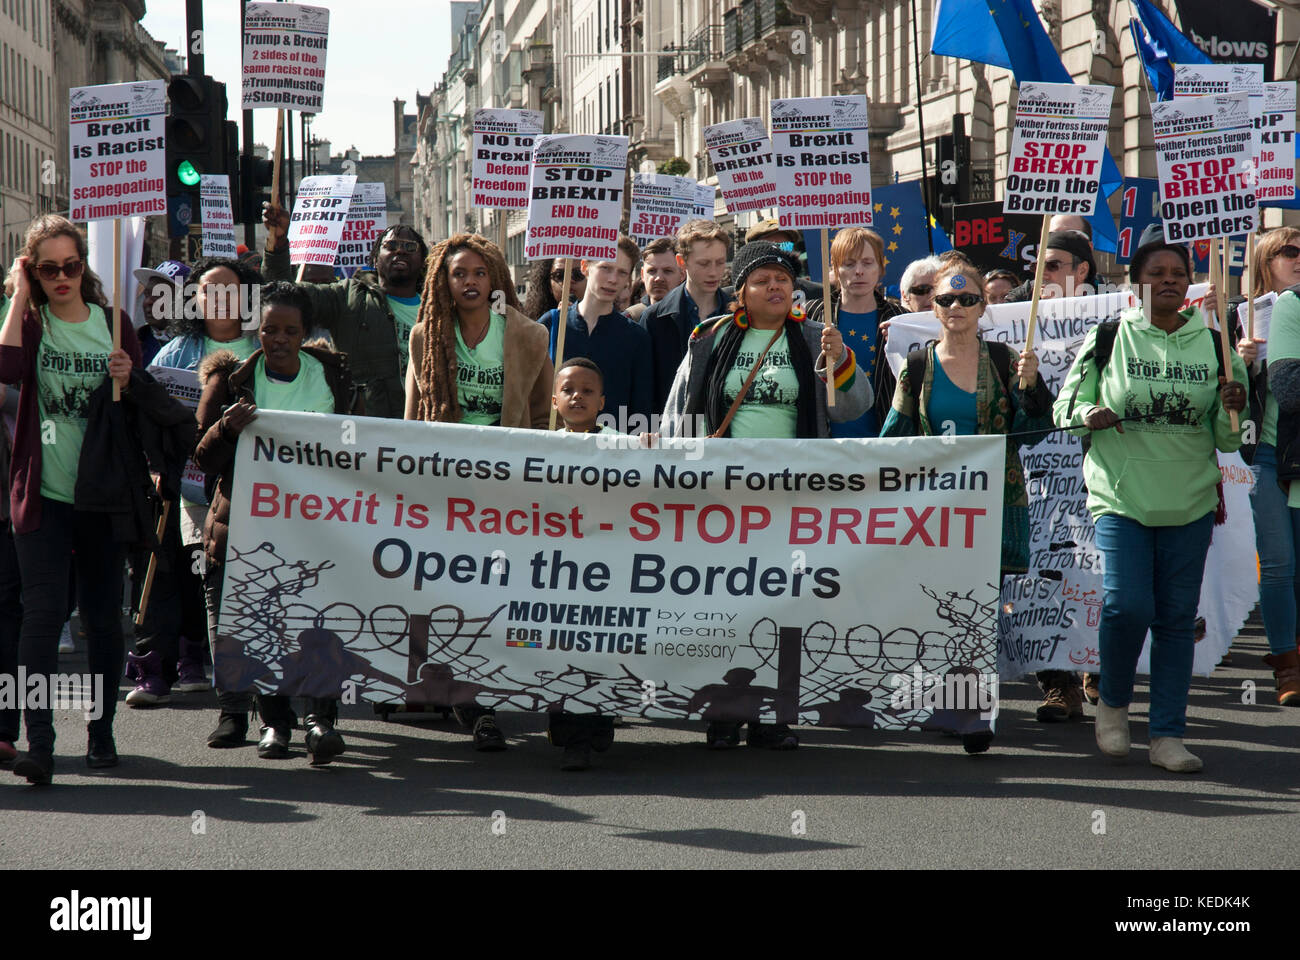 Demonstrators anti Brexit, pro EU, many posters and large banner' Open the Borders, Brexit is rascist' - Stock Image